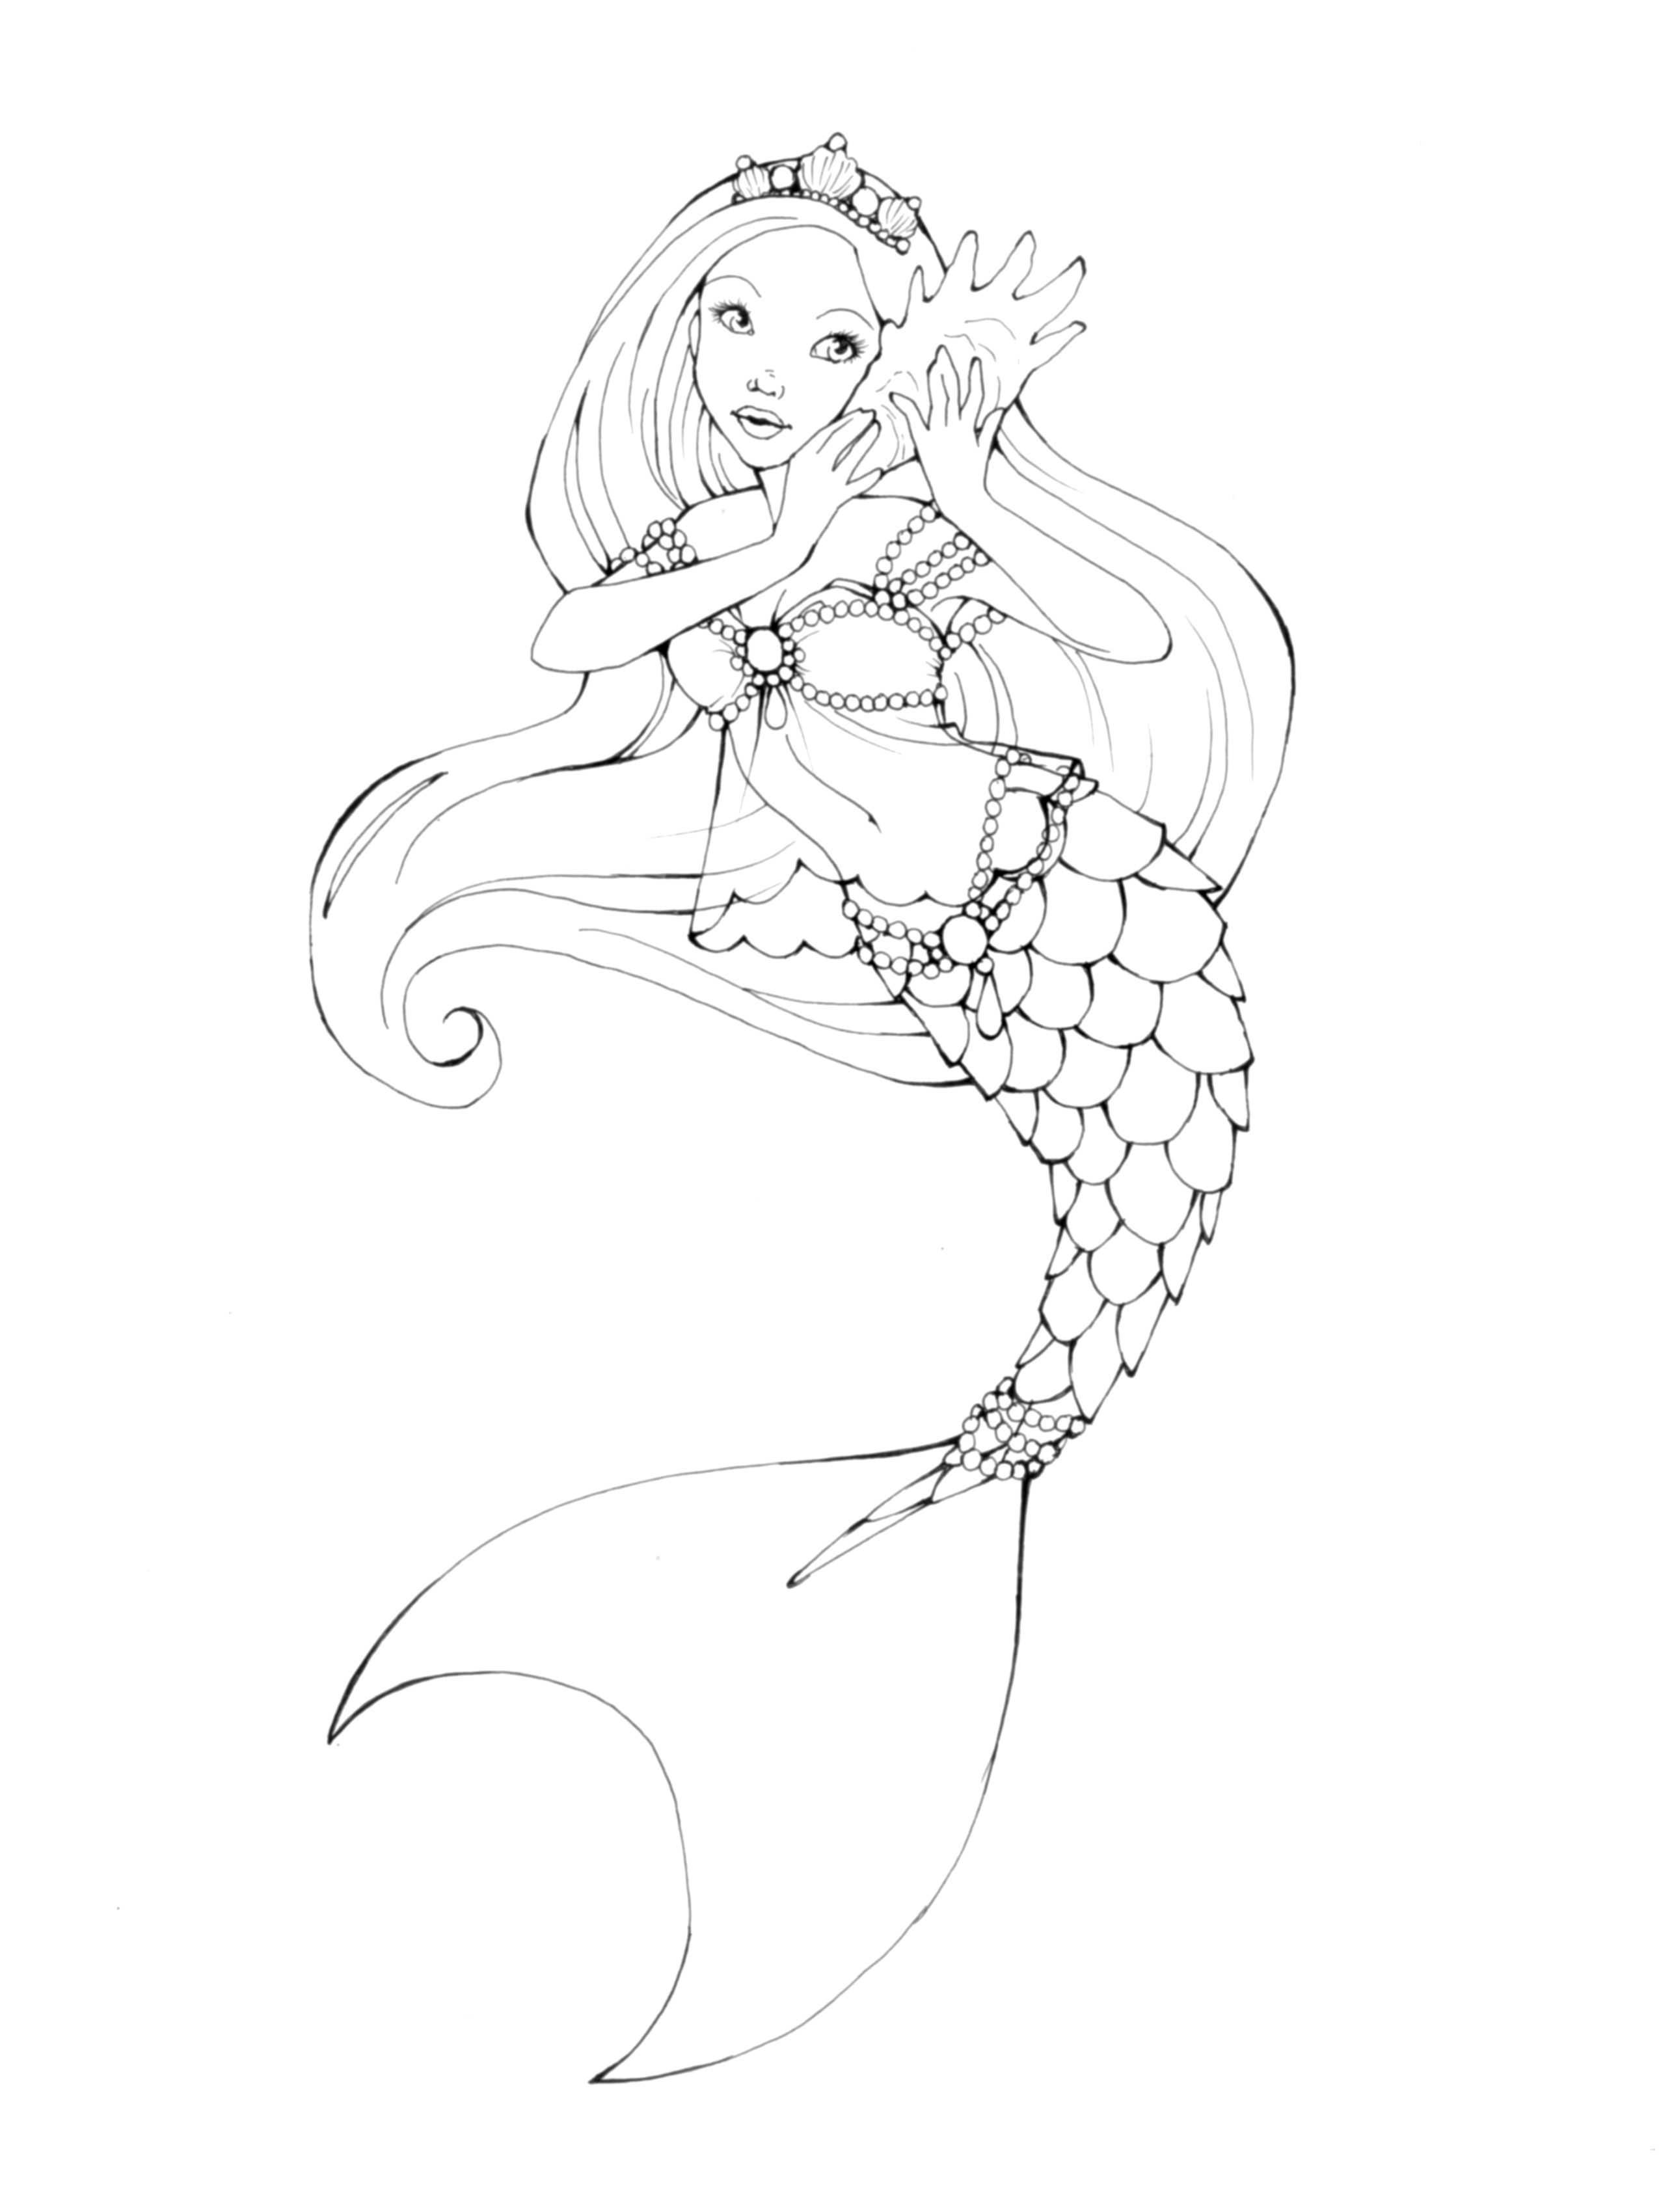 Mermaid Coloring Pages From H2o Coloring Pages